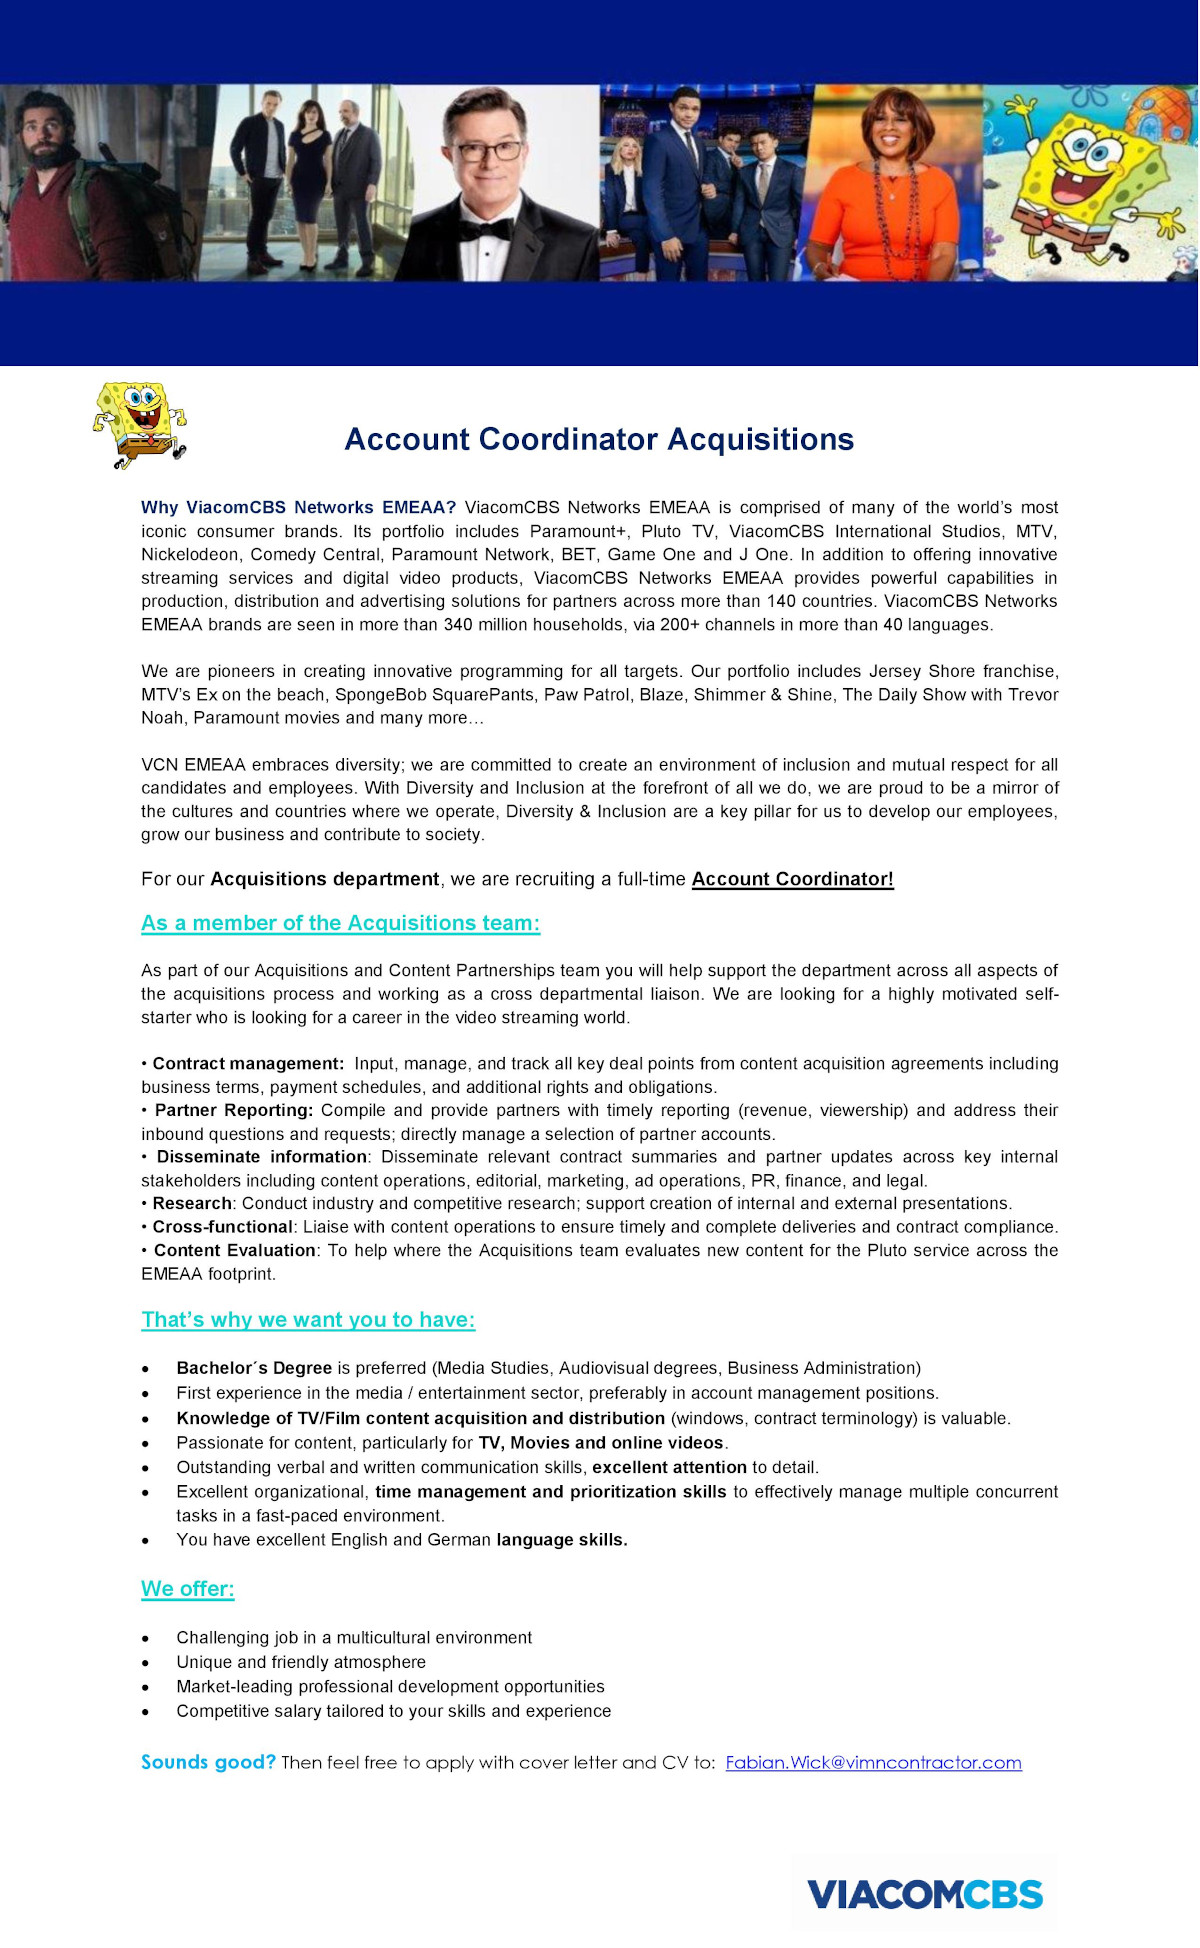 Account Coordinator Acquisitions (m/w/d)